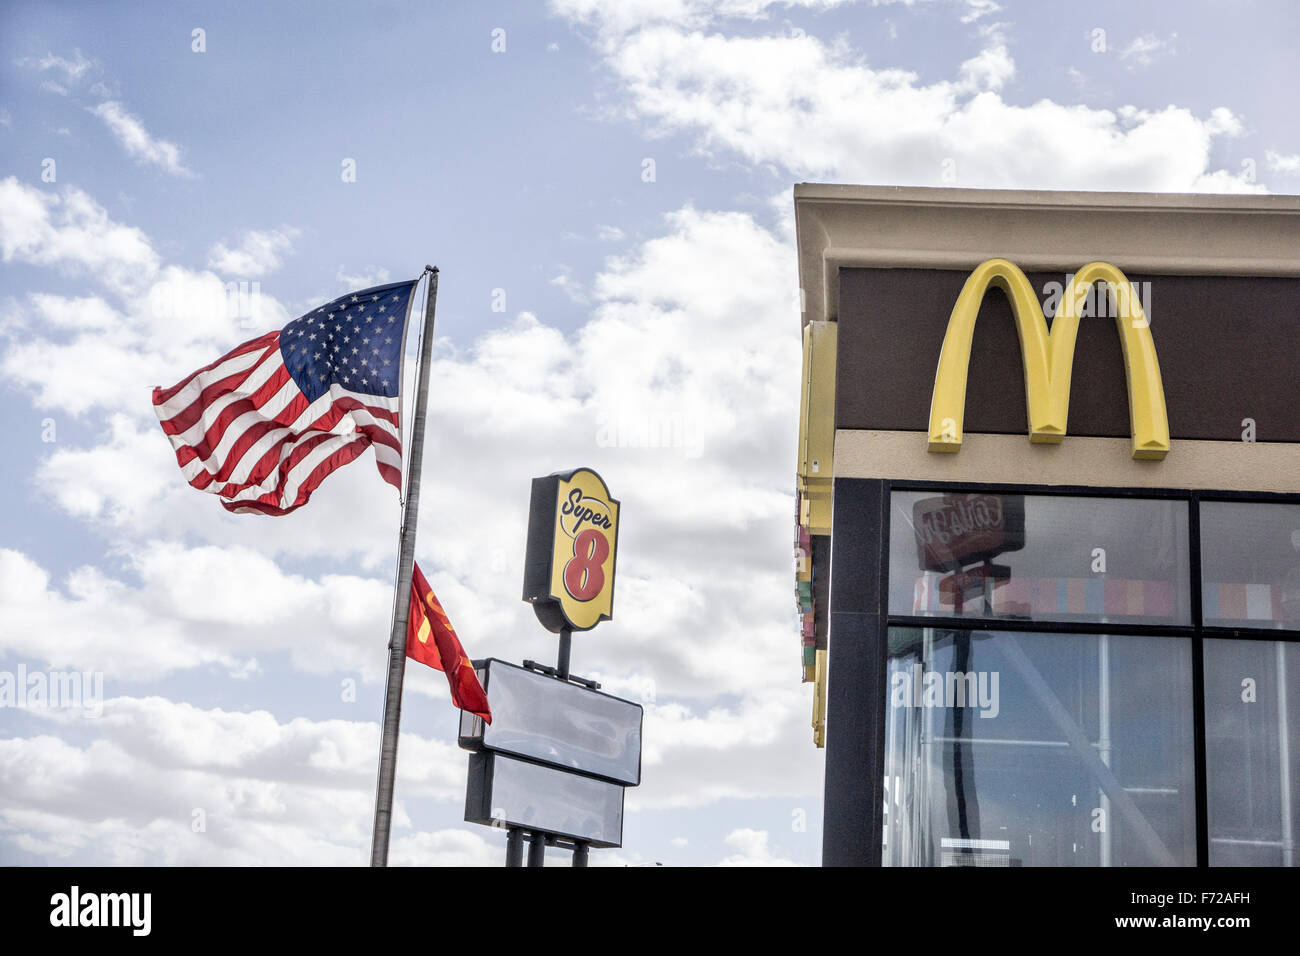 the stars & stripes fly on flagpole in brisk Arizona desert breeze next to advertising logos for 2 iconic American - Stock Image